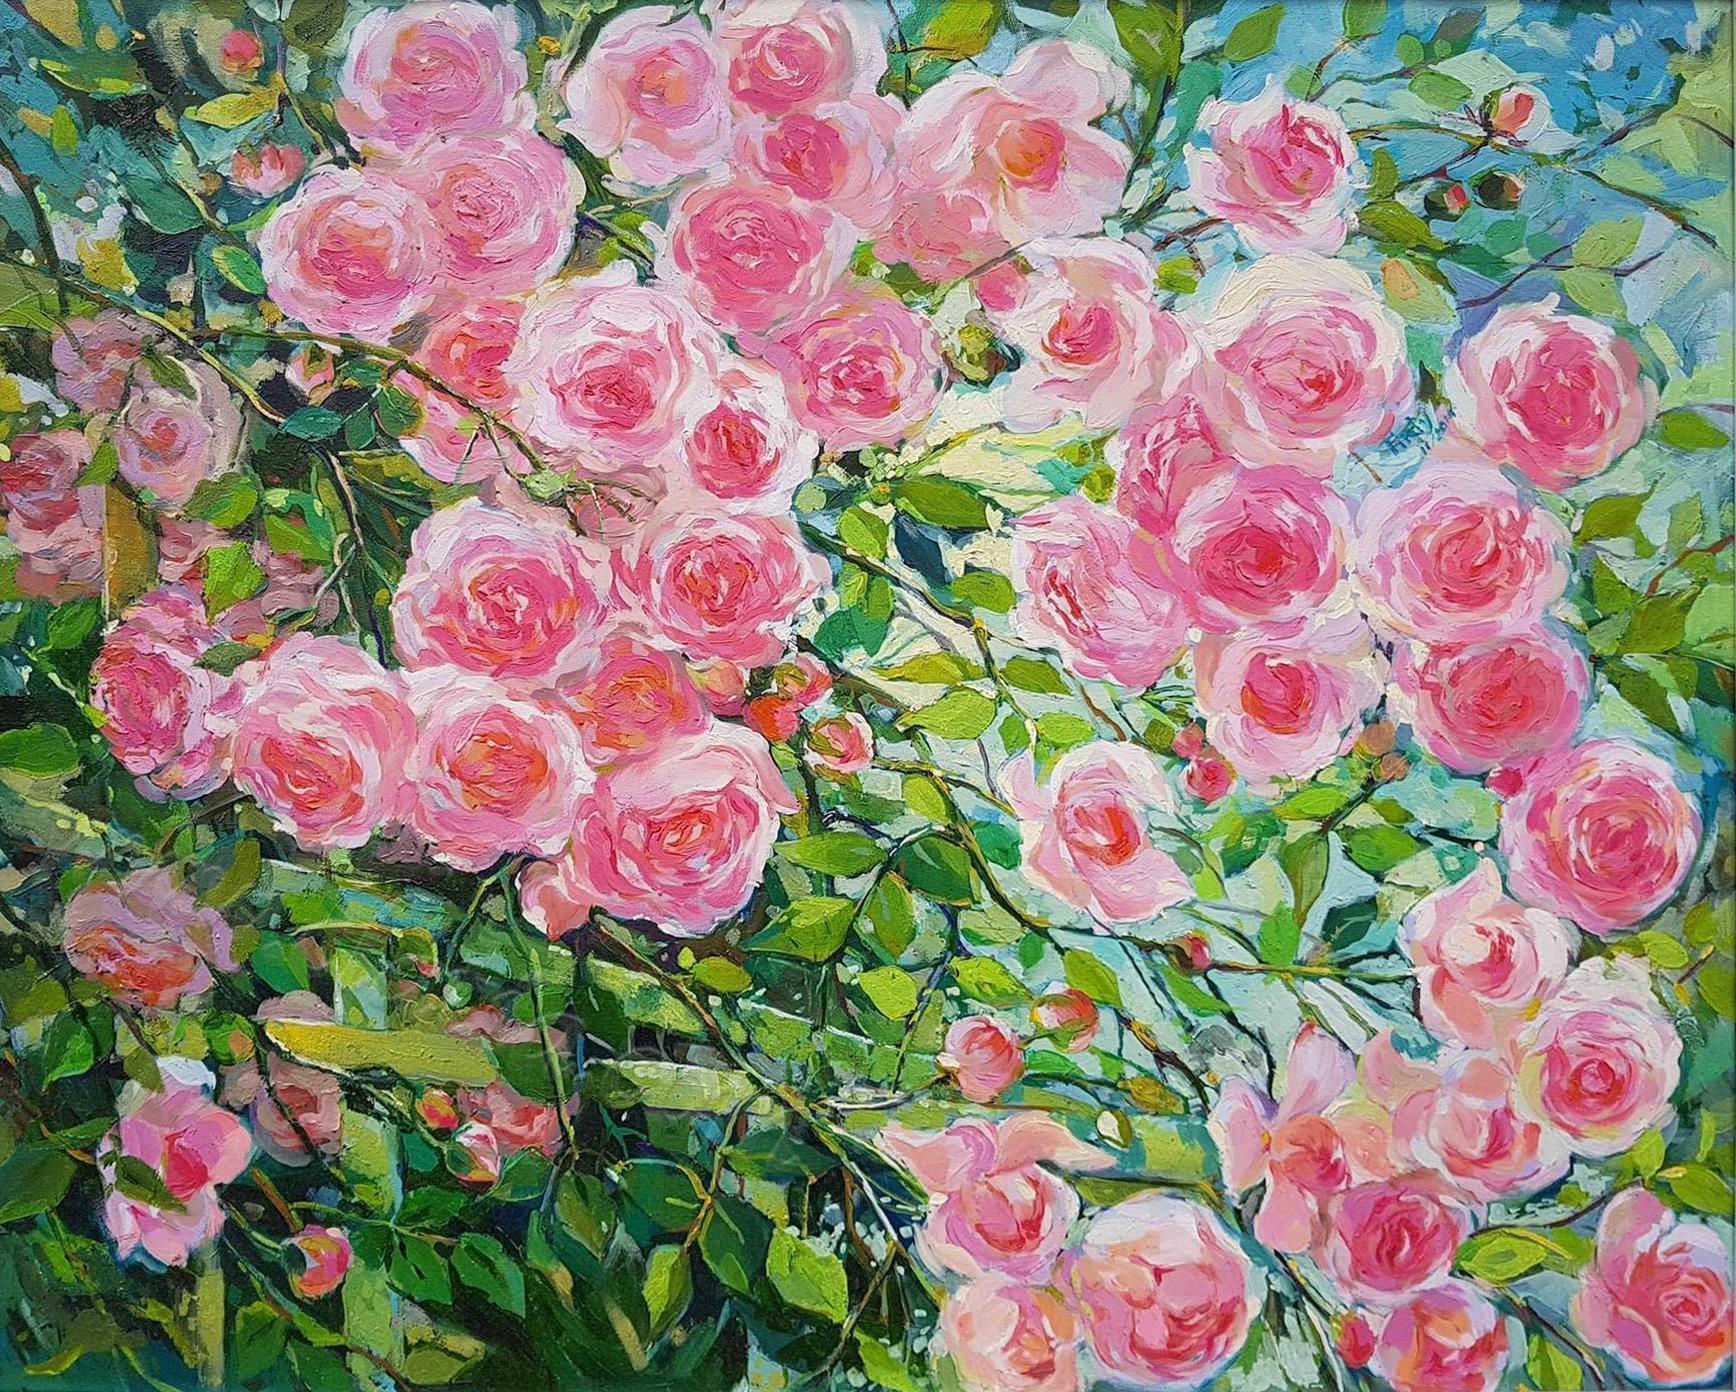 Fence of roses